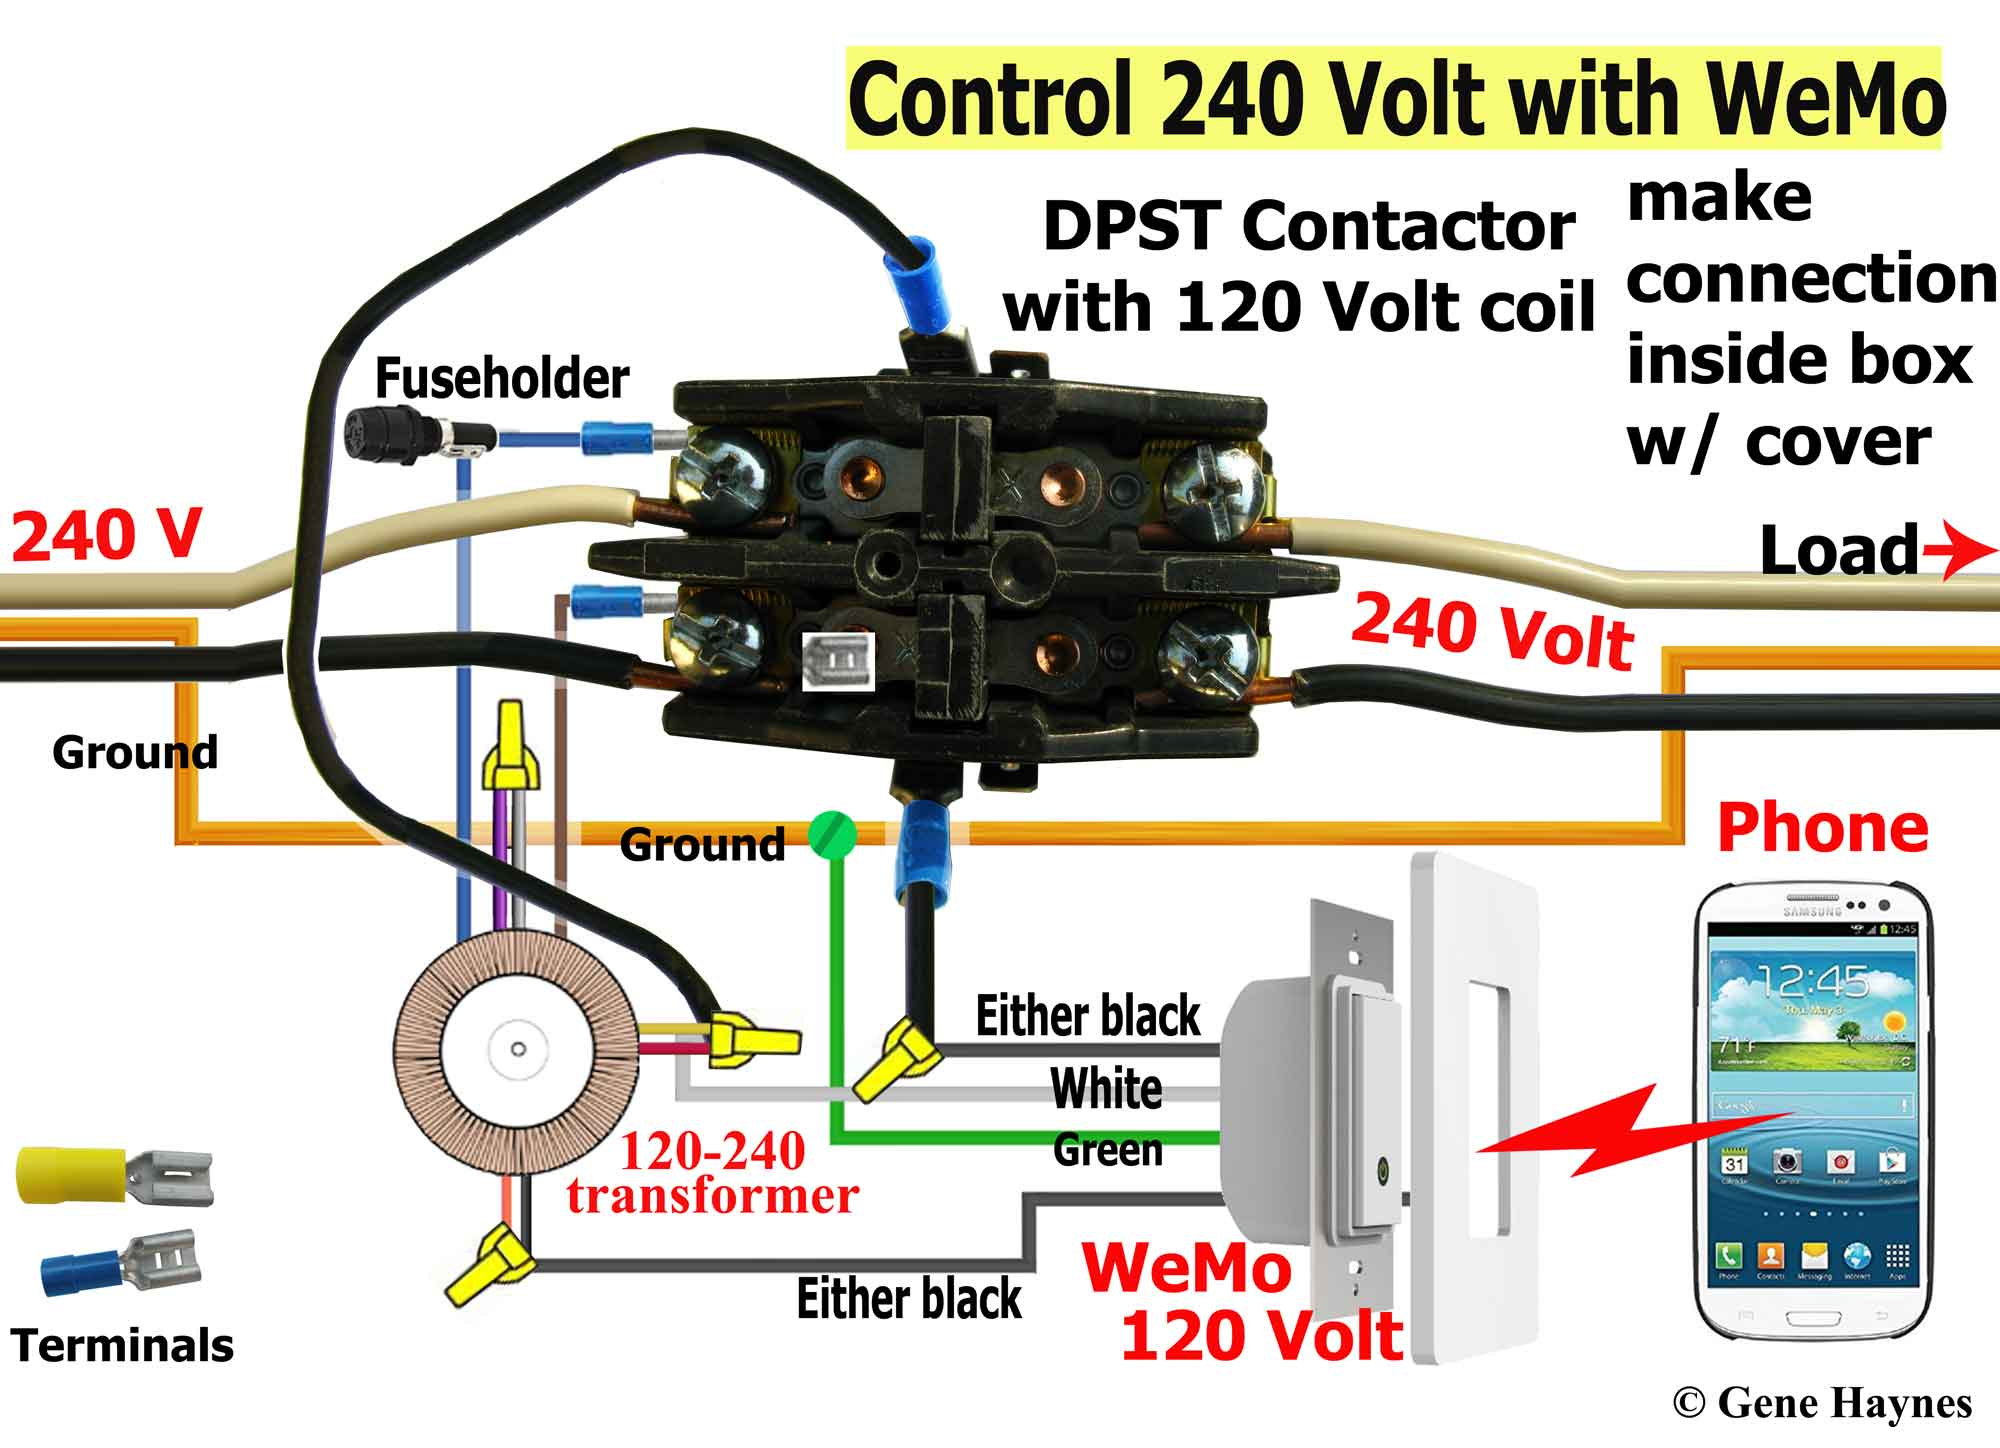 IMG_2203 contactor WeMo r2 control 240 volt with wemo 240 volt contactor wiring diagram at edmiracle.co